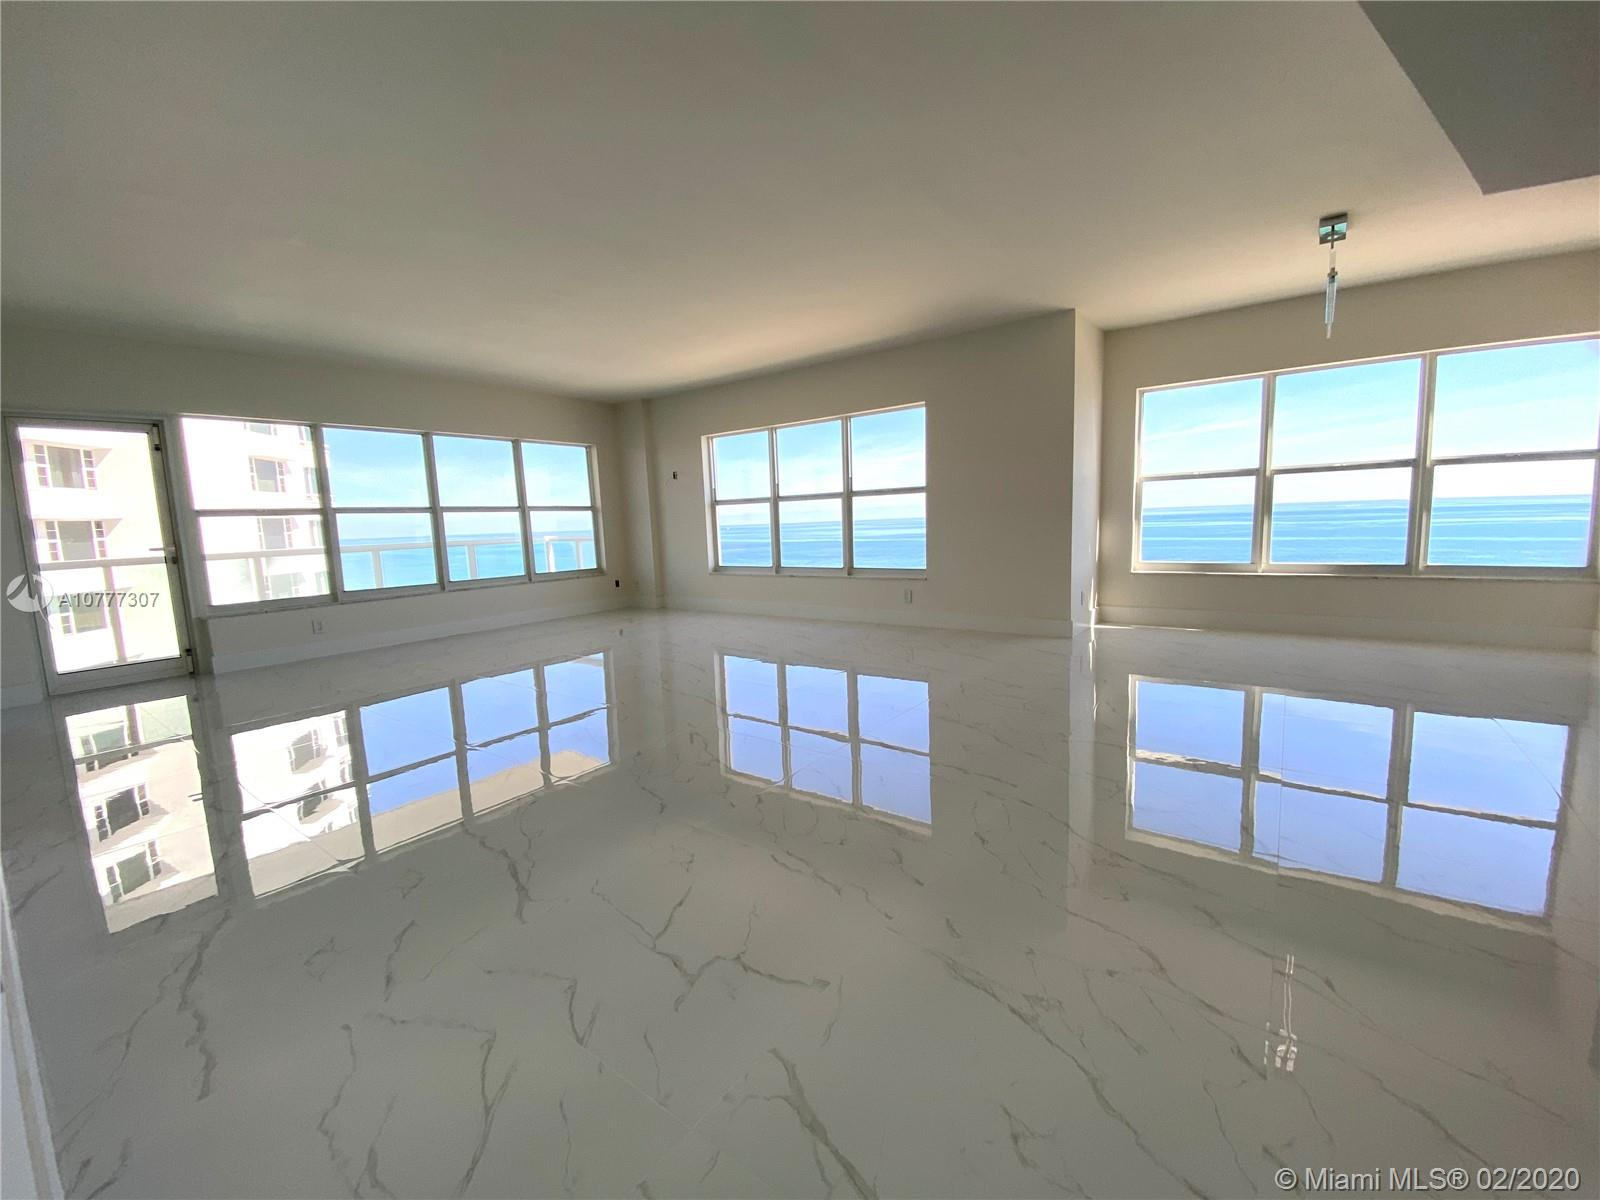 DIRECT FRONT OCEAN VIEW !!!! BRAND NEW !!! NEW CARRARA PORCELAIN TILE, APPLIANCES, BATHROOMS, CLOSETS, KITCHEN CABINETS !!!! MUST SEE !!!  finish remodel end of November !!